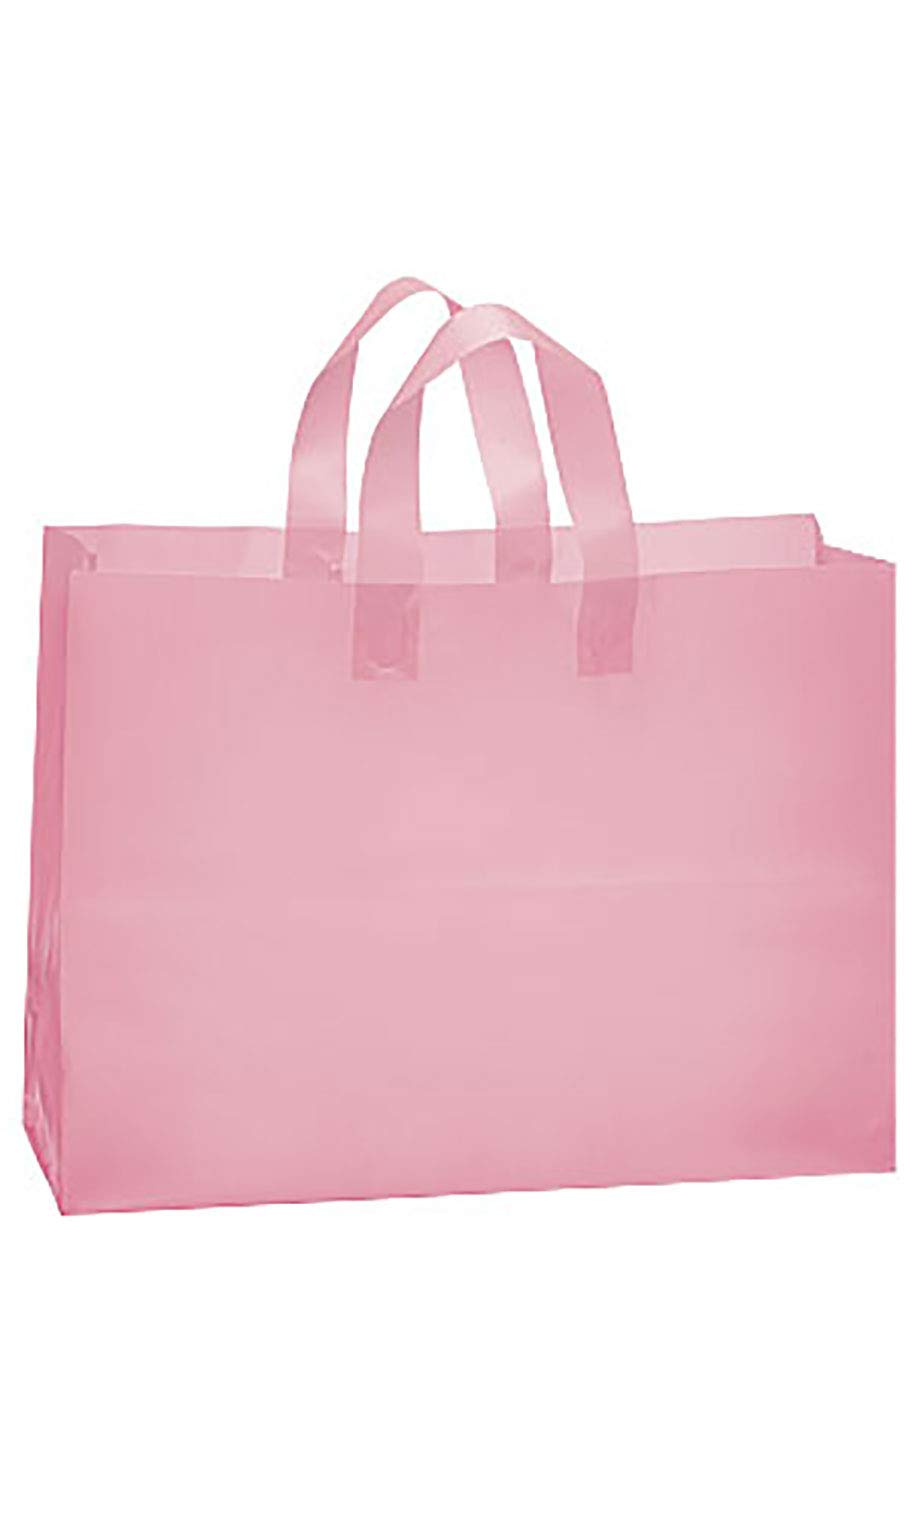 SSWBasics Large Pink Frosted Plastic Shopping Bags - 16'' x 6'' x 12'' - Case of 100